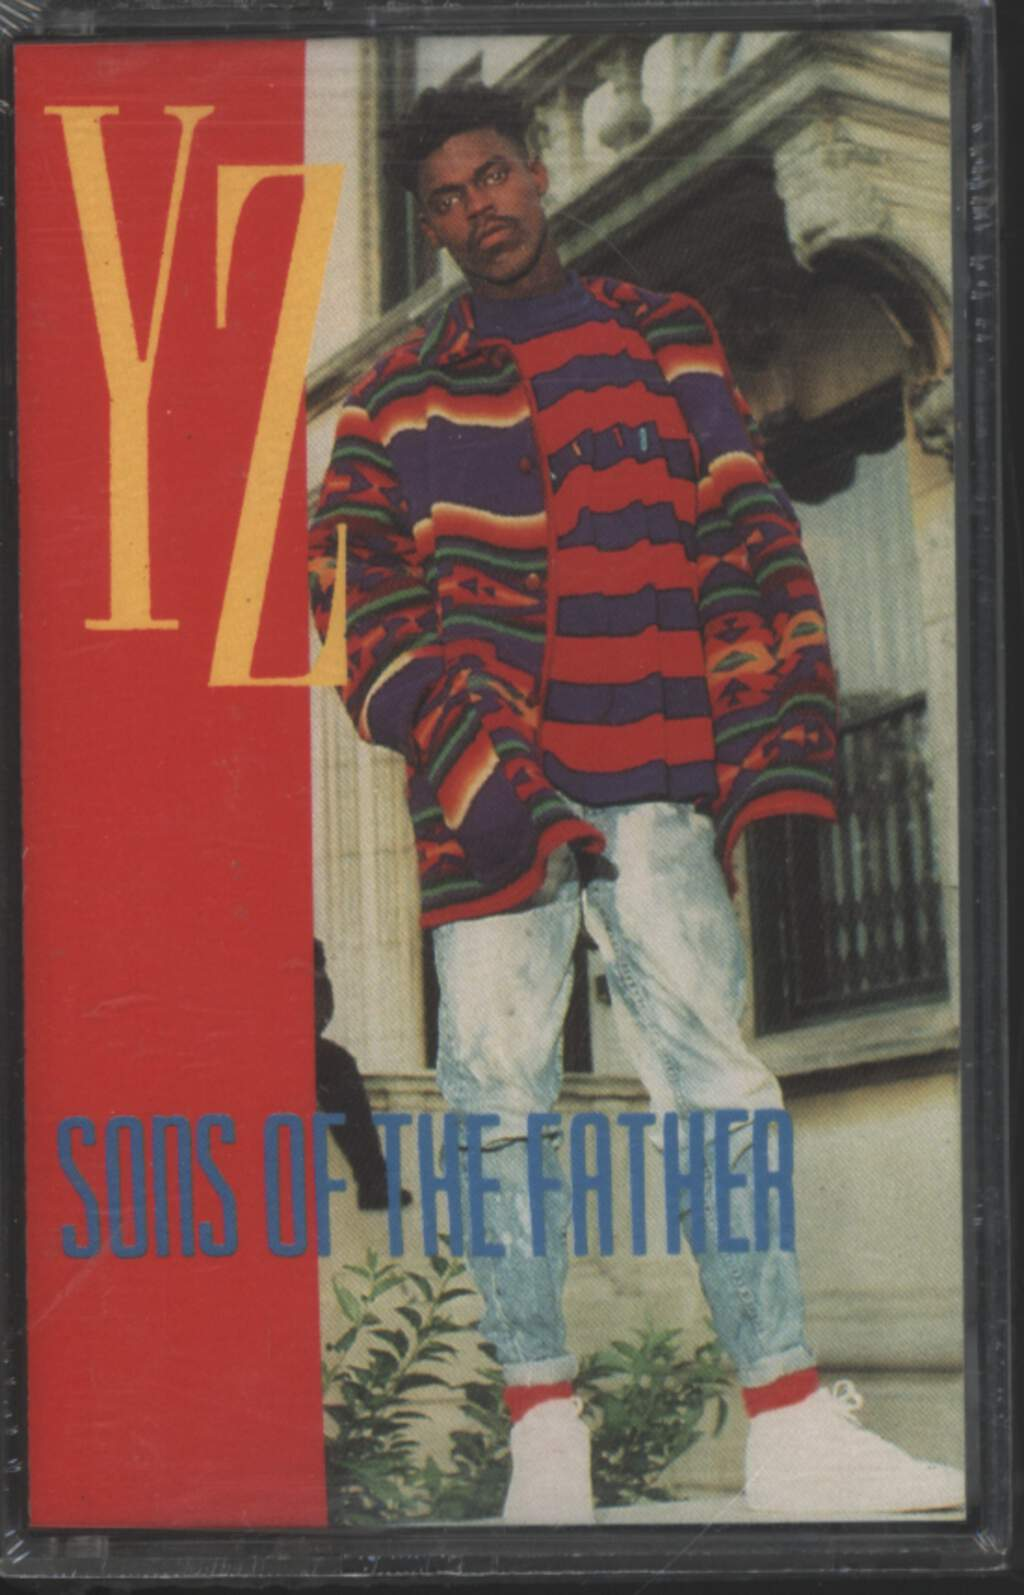 Yz: Sons Of The Father, Tape